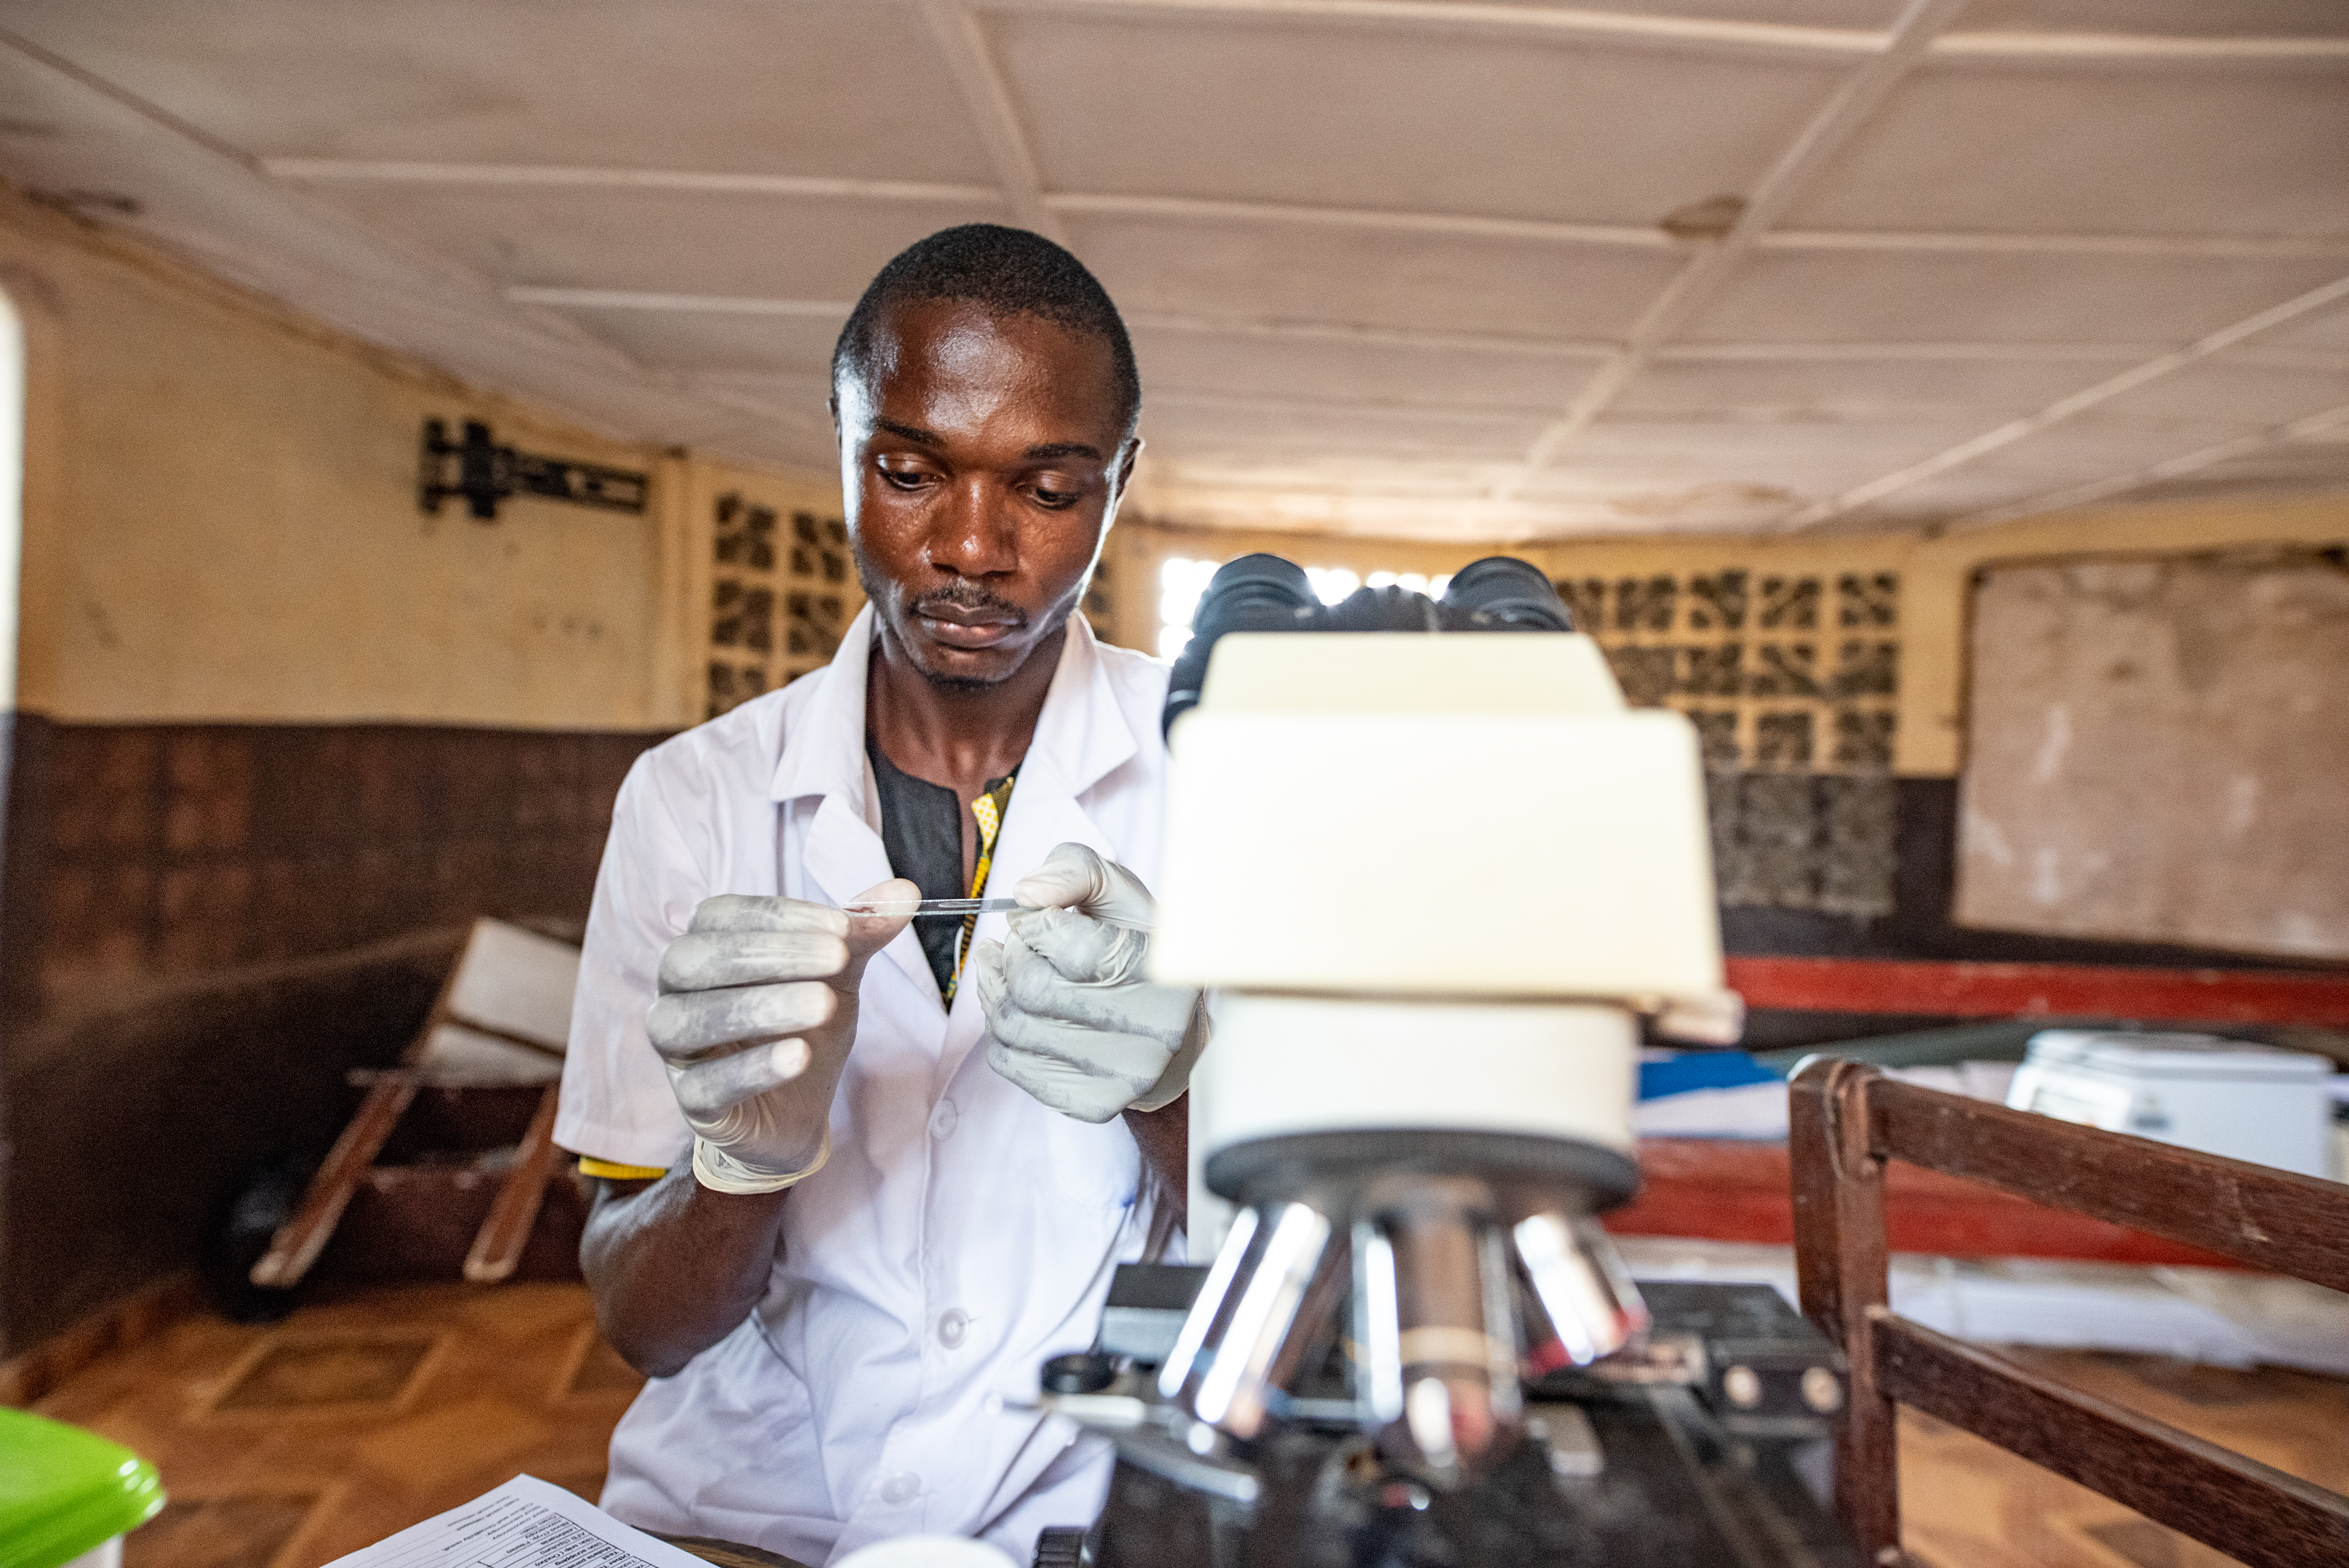 Lab technician Mohammed prepares a sample, Community Health Centre, Waterloo, 13.09.19 credit Olivia Acland